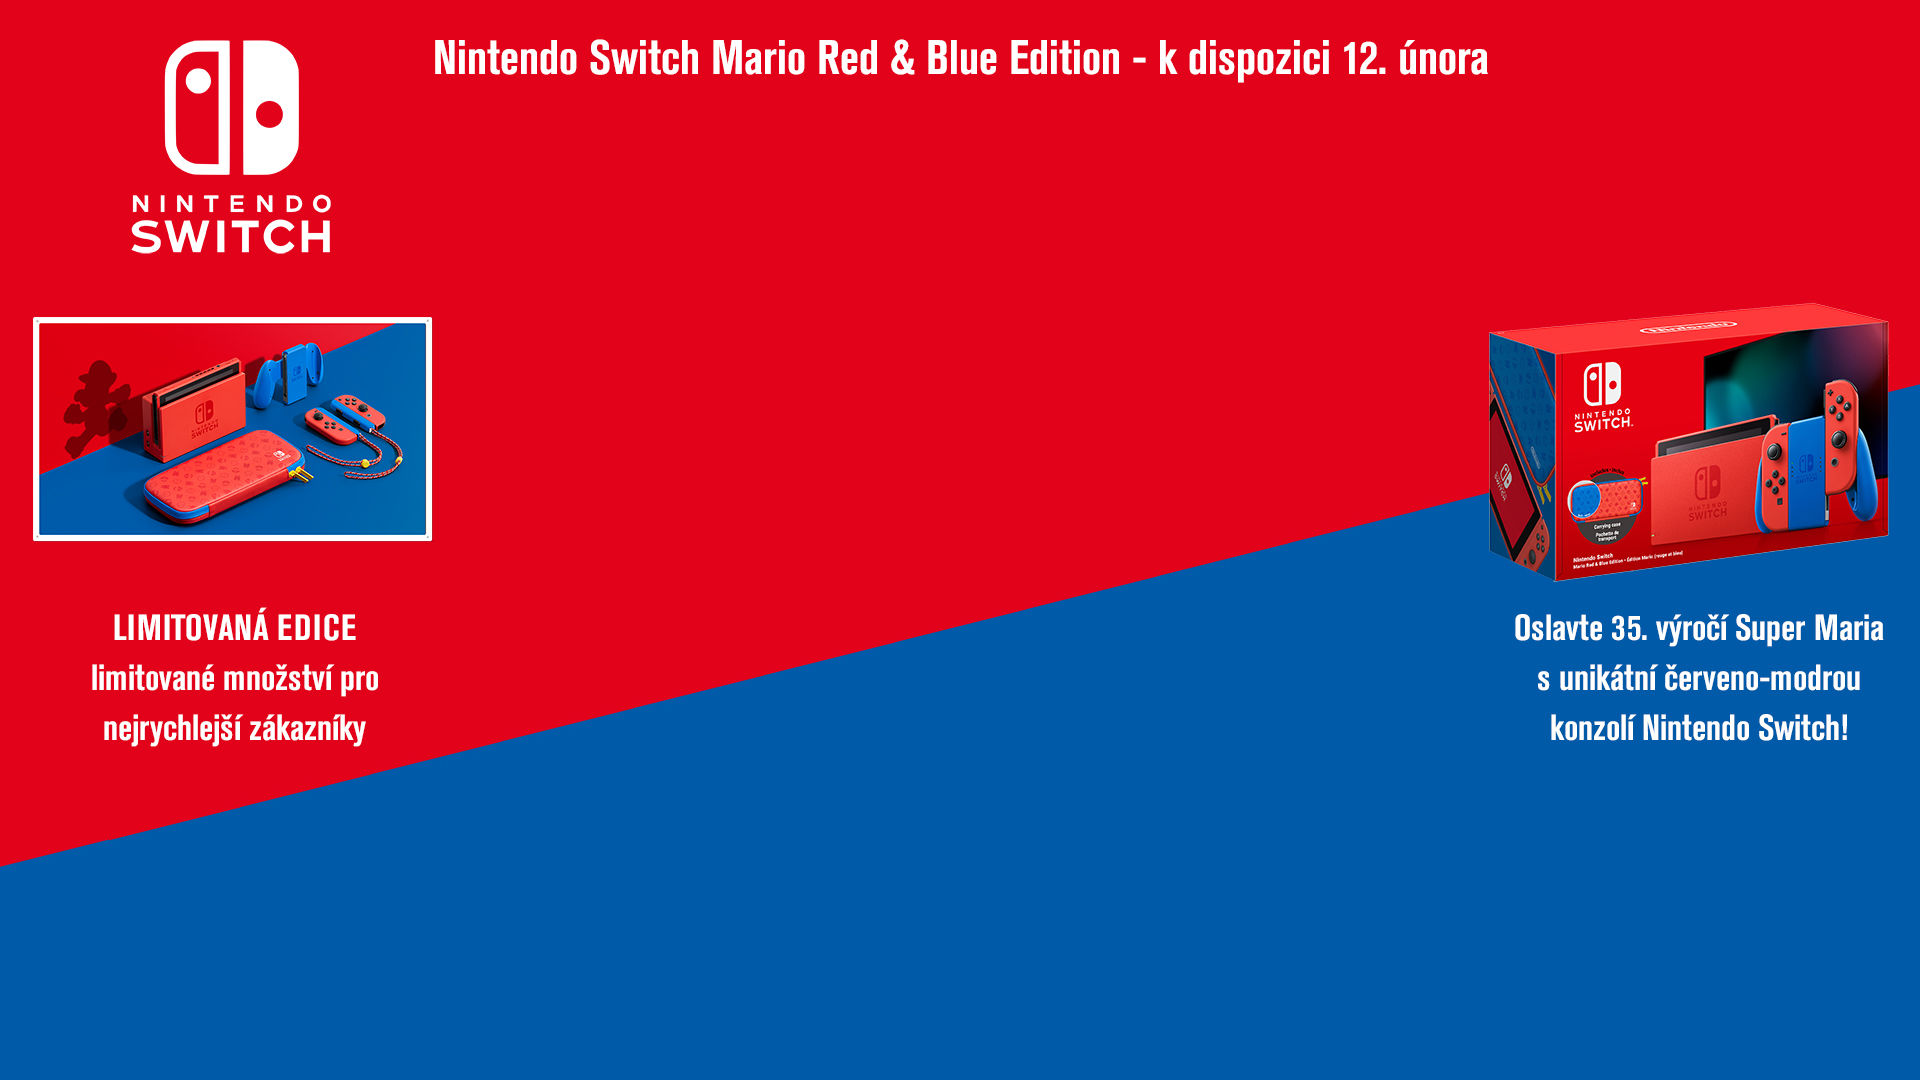 NINTENDOSHOP Nintendo Switch Mario Red & Blue Edition